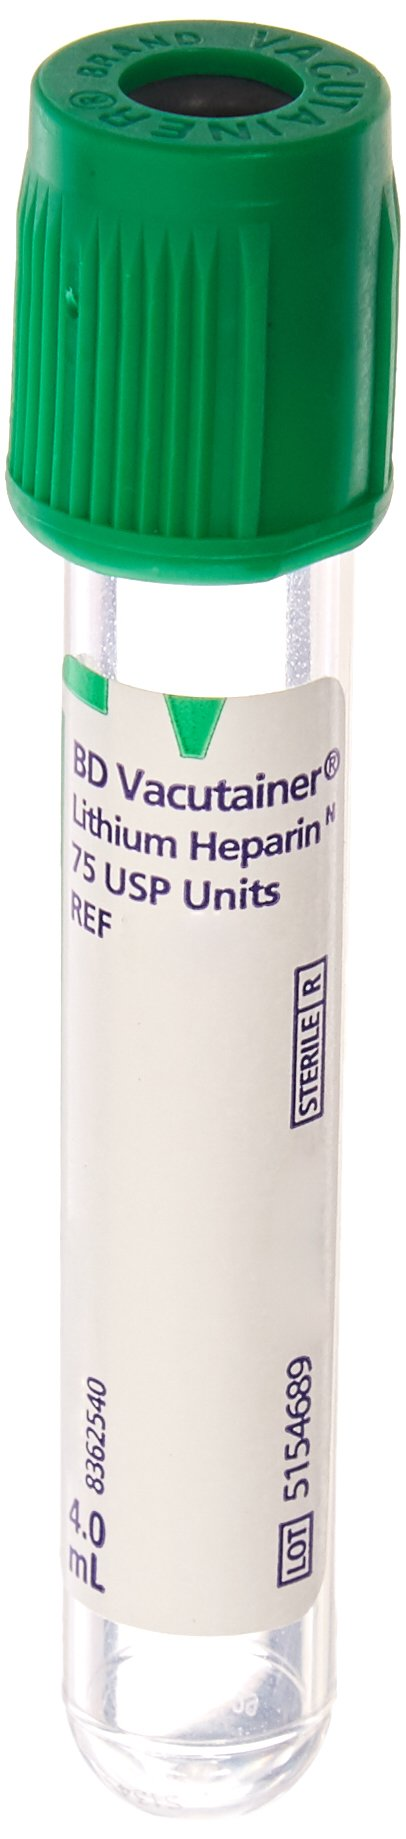 BD Medical Systems 367884 Tube with Paper Label, Additive Lithium Heparin, Hemogard Closure, Plastic, 13 mm x 75 mm Size, 4 mL Capacity, Green (Pack of 100)